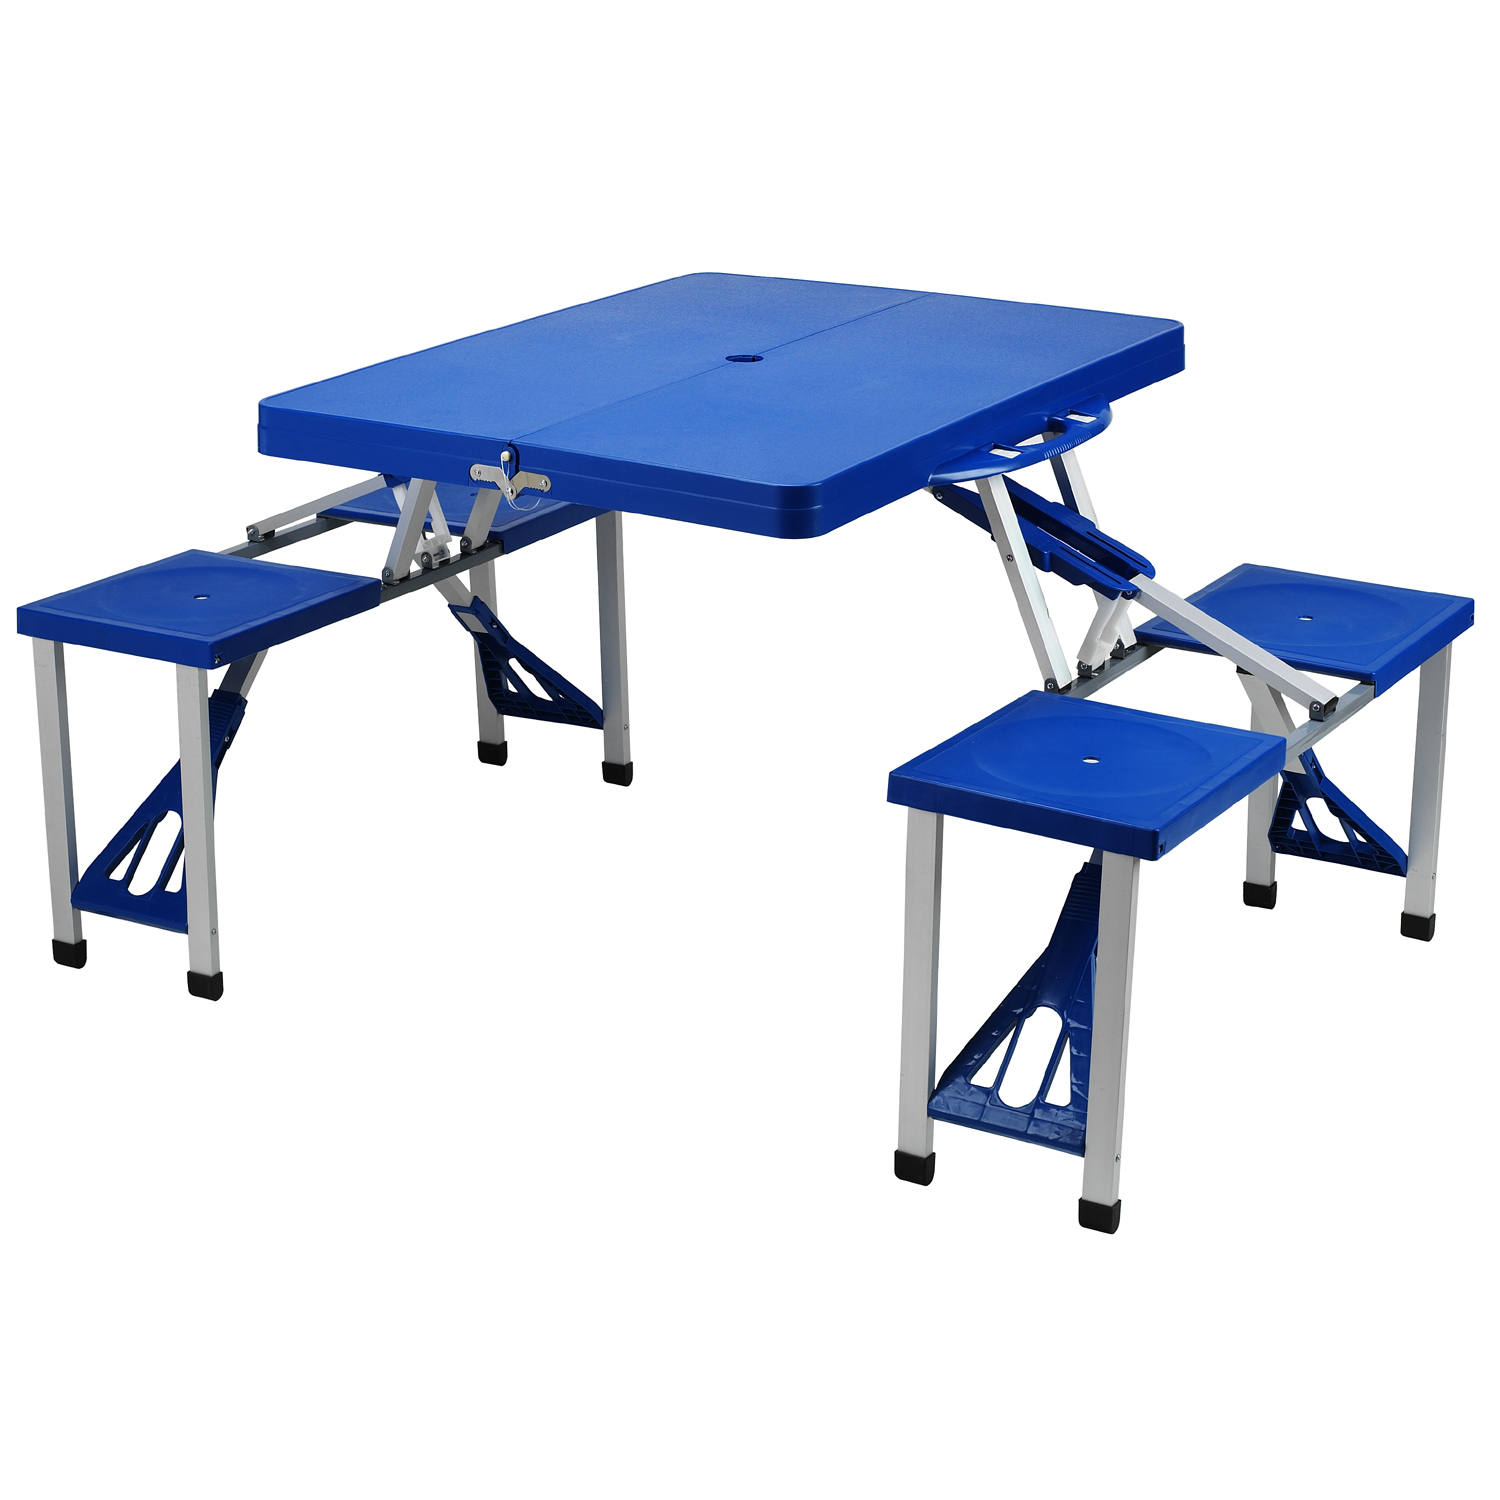 Picnic at Ascot Portable Picnic Table Set, Blue